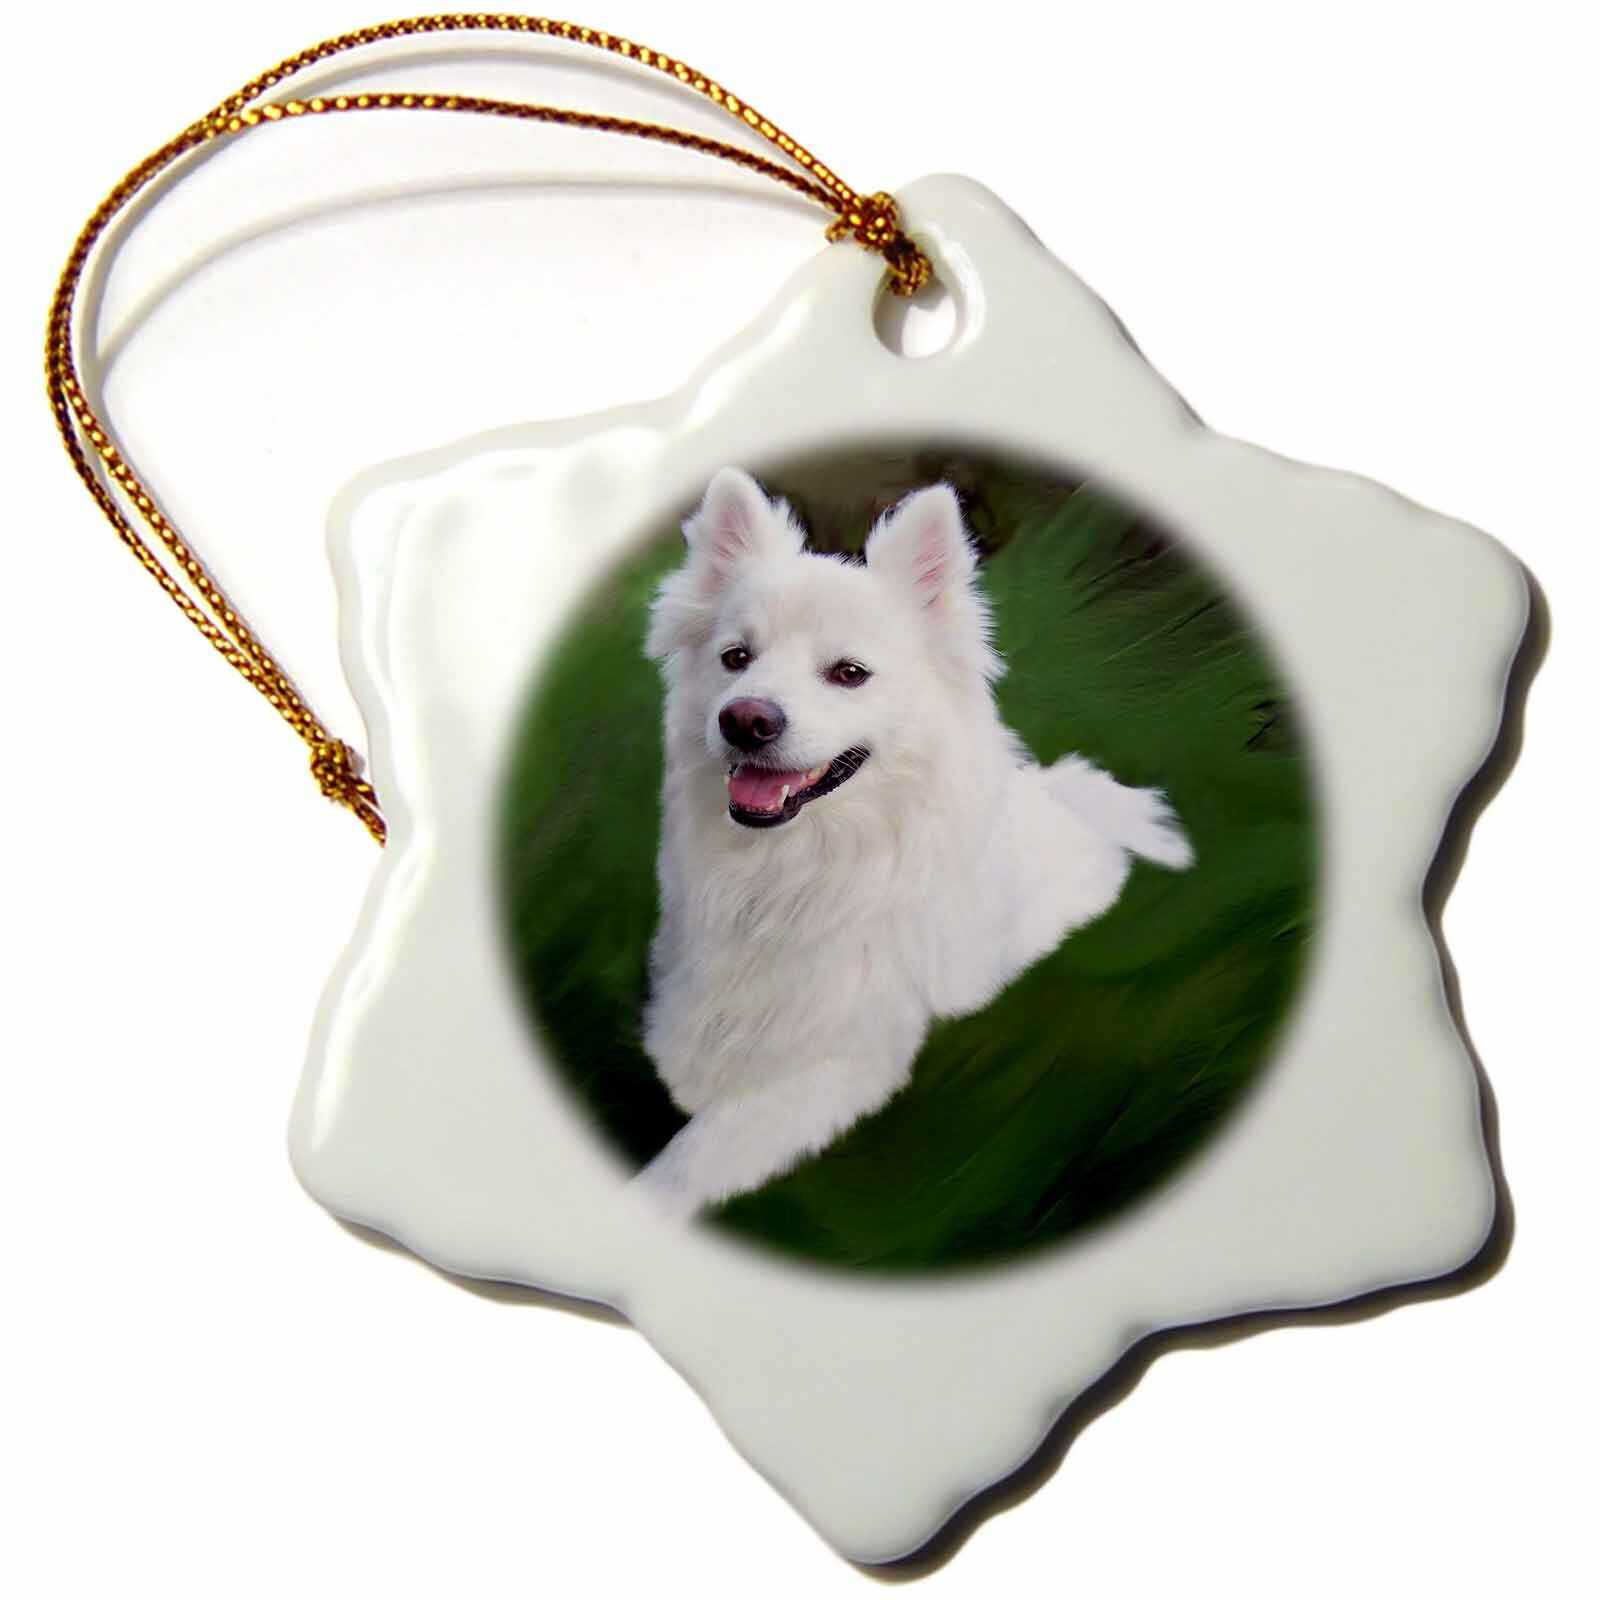 The Holiday Aisle American Eskimo Holiday Shaped Ornament Wayfair